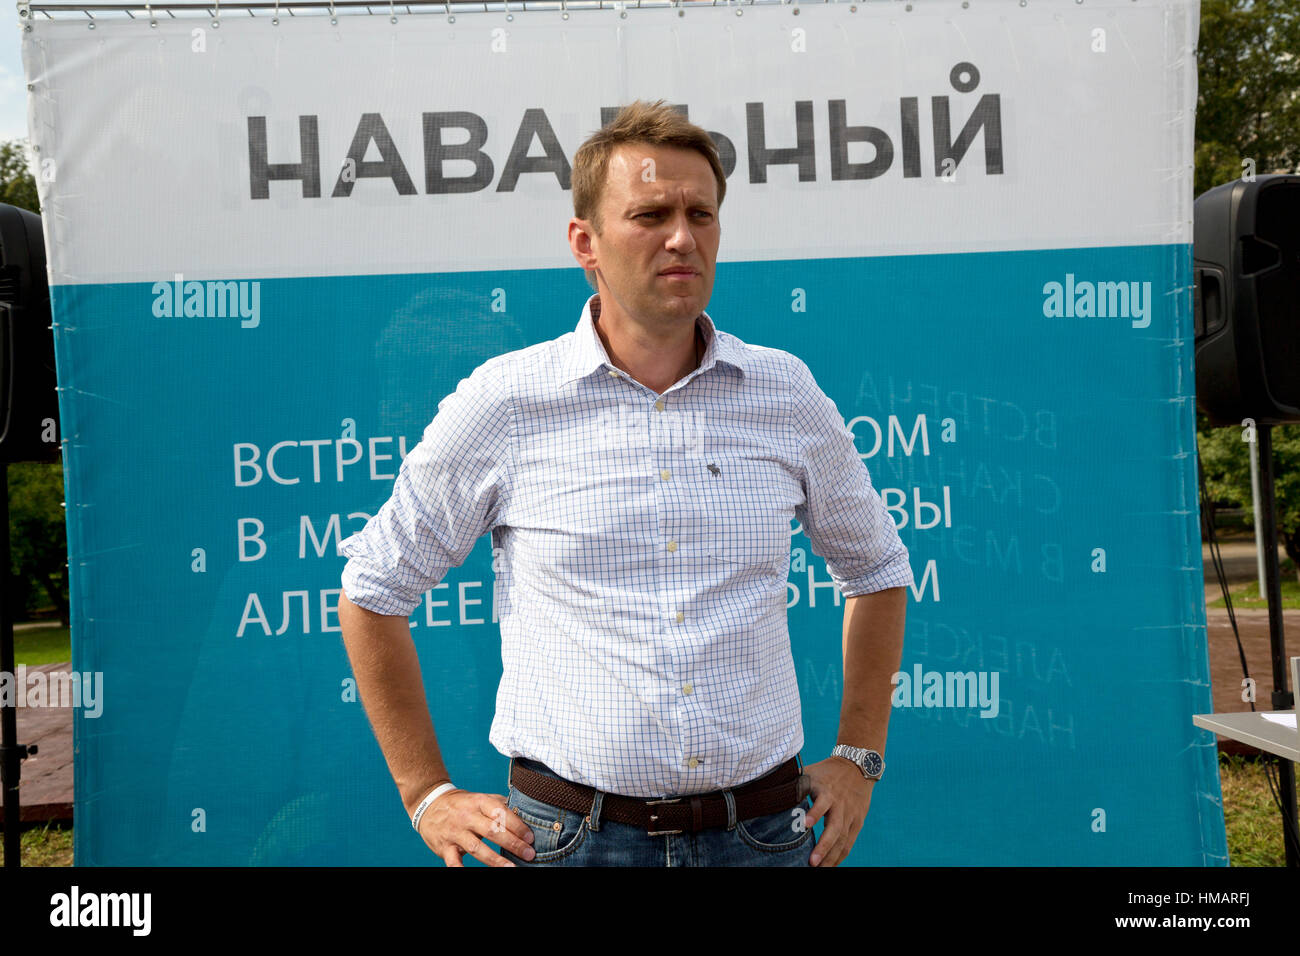 Russian opposition leader Alexei Navalny speaks to voters and supporters in park during election campaign for mayor - Stock Image